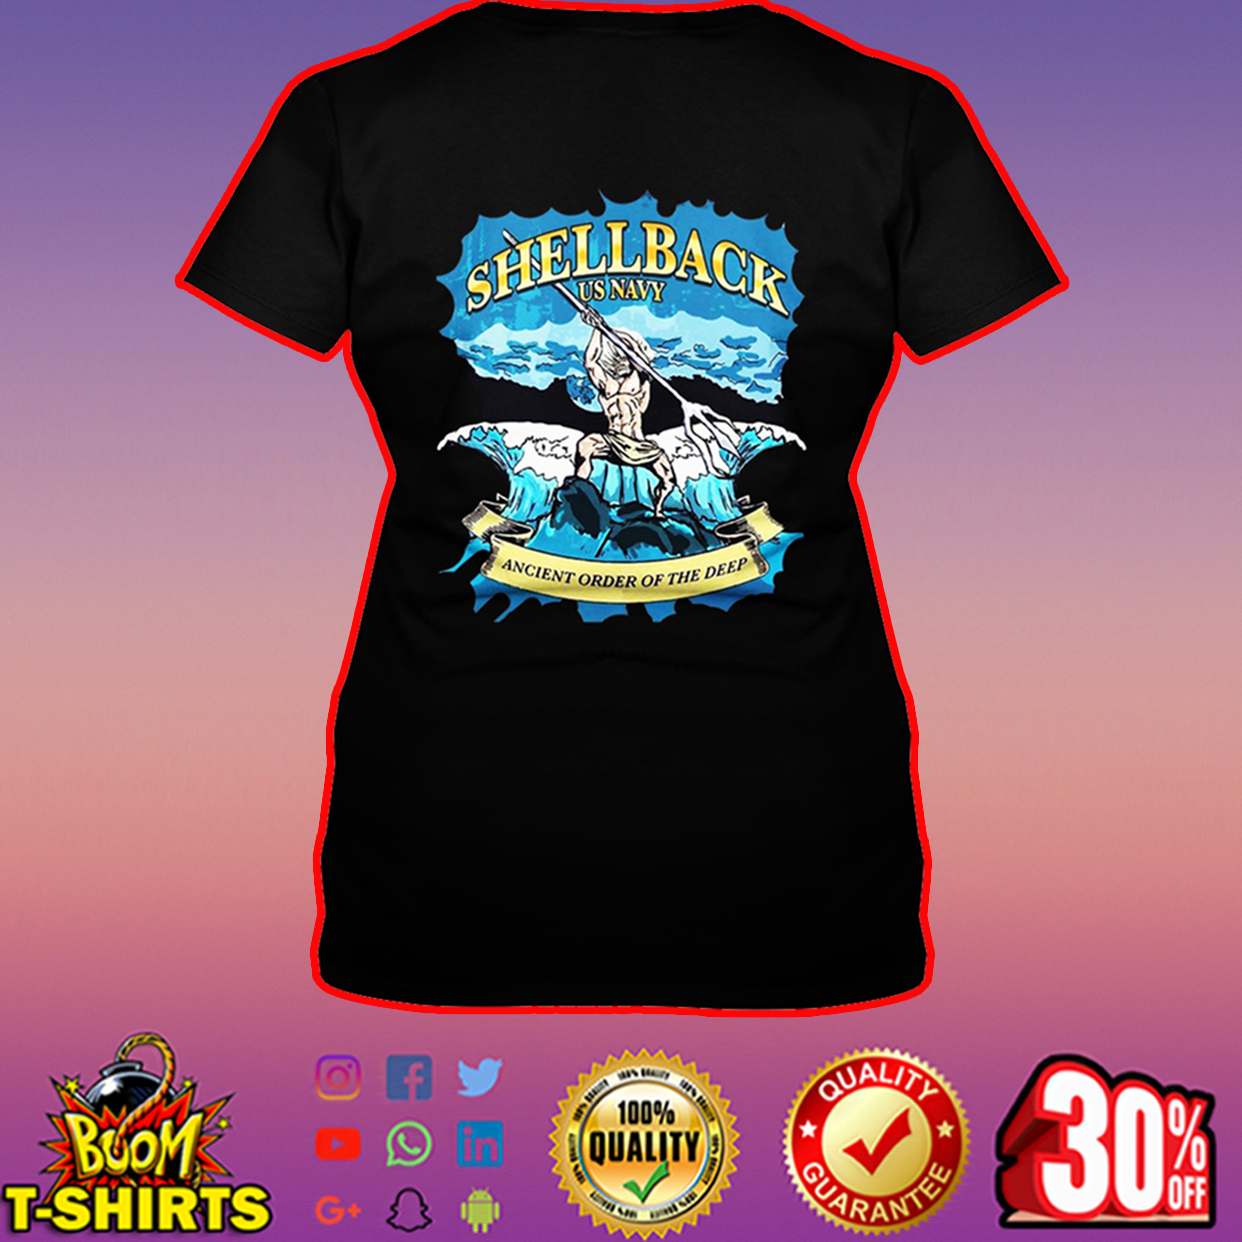 Shellback US Navy ancient order of the deep v-neck